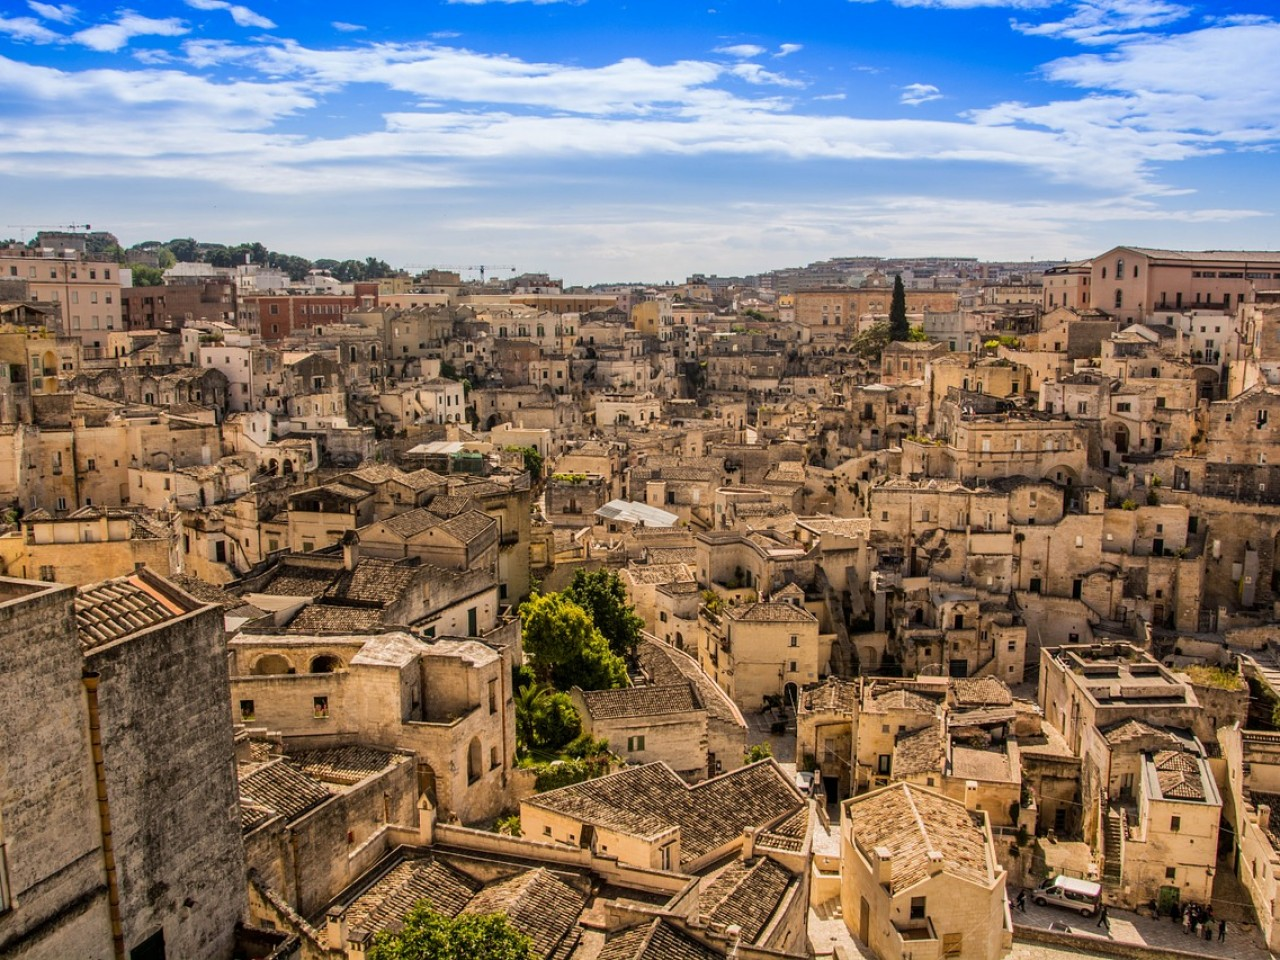 WEEK END IN MATERA